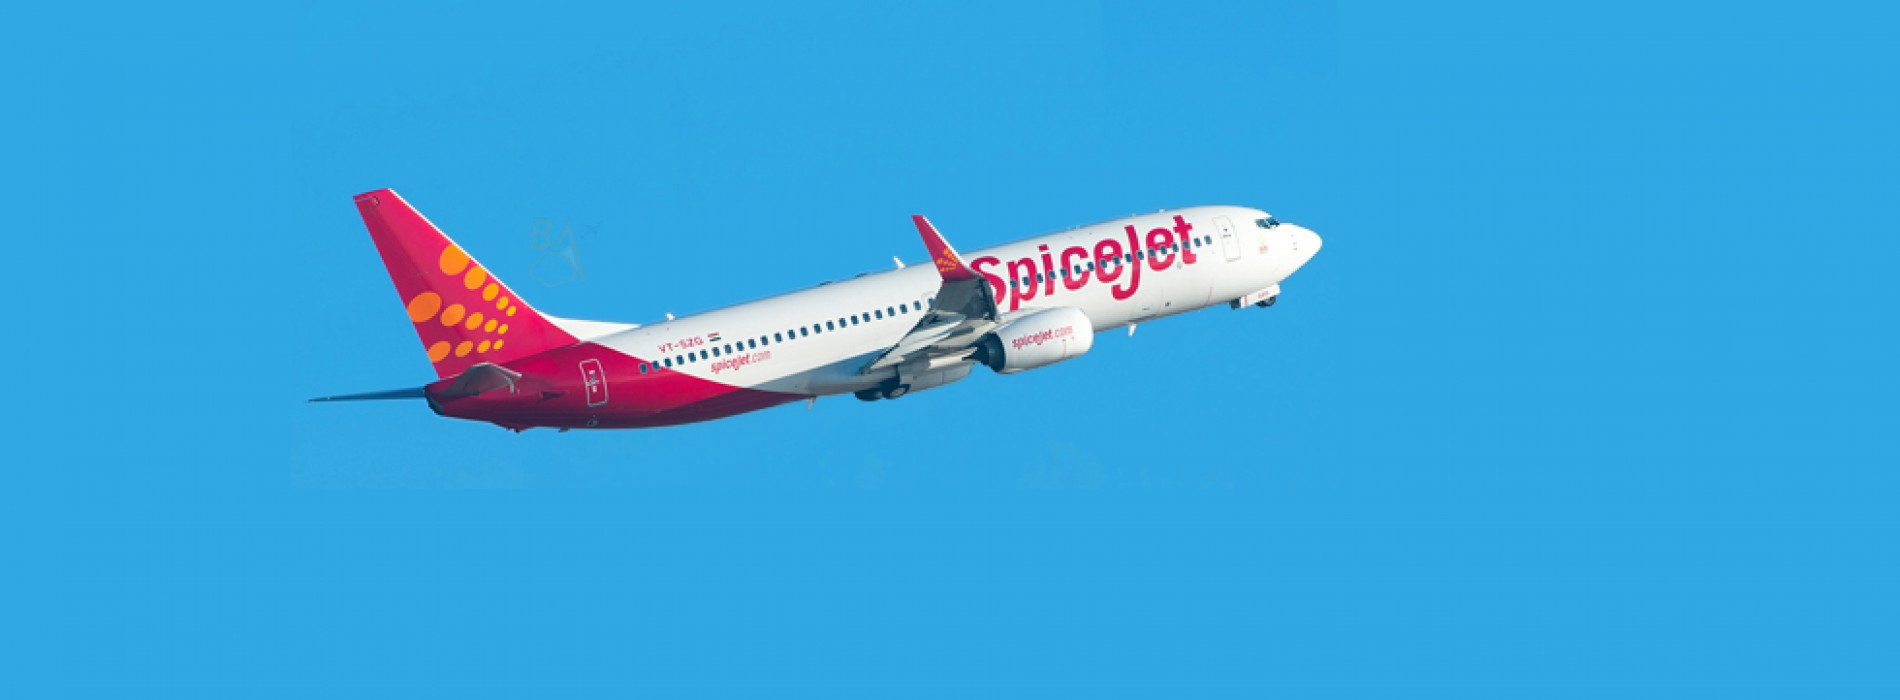 SpiceJet to buy up to 205 Boeing planes worth Rs 1.5 lakh crore